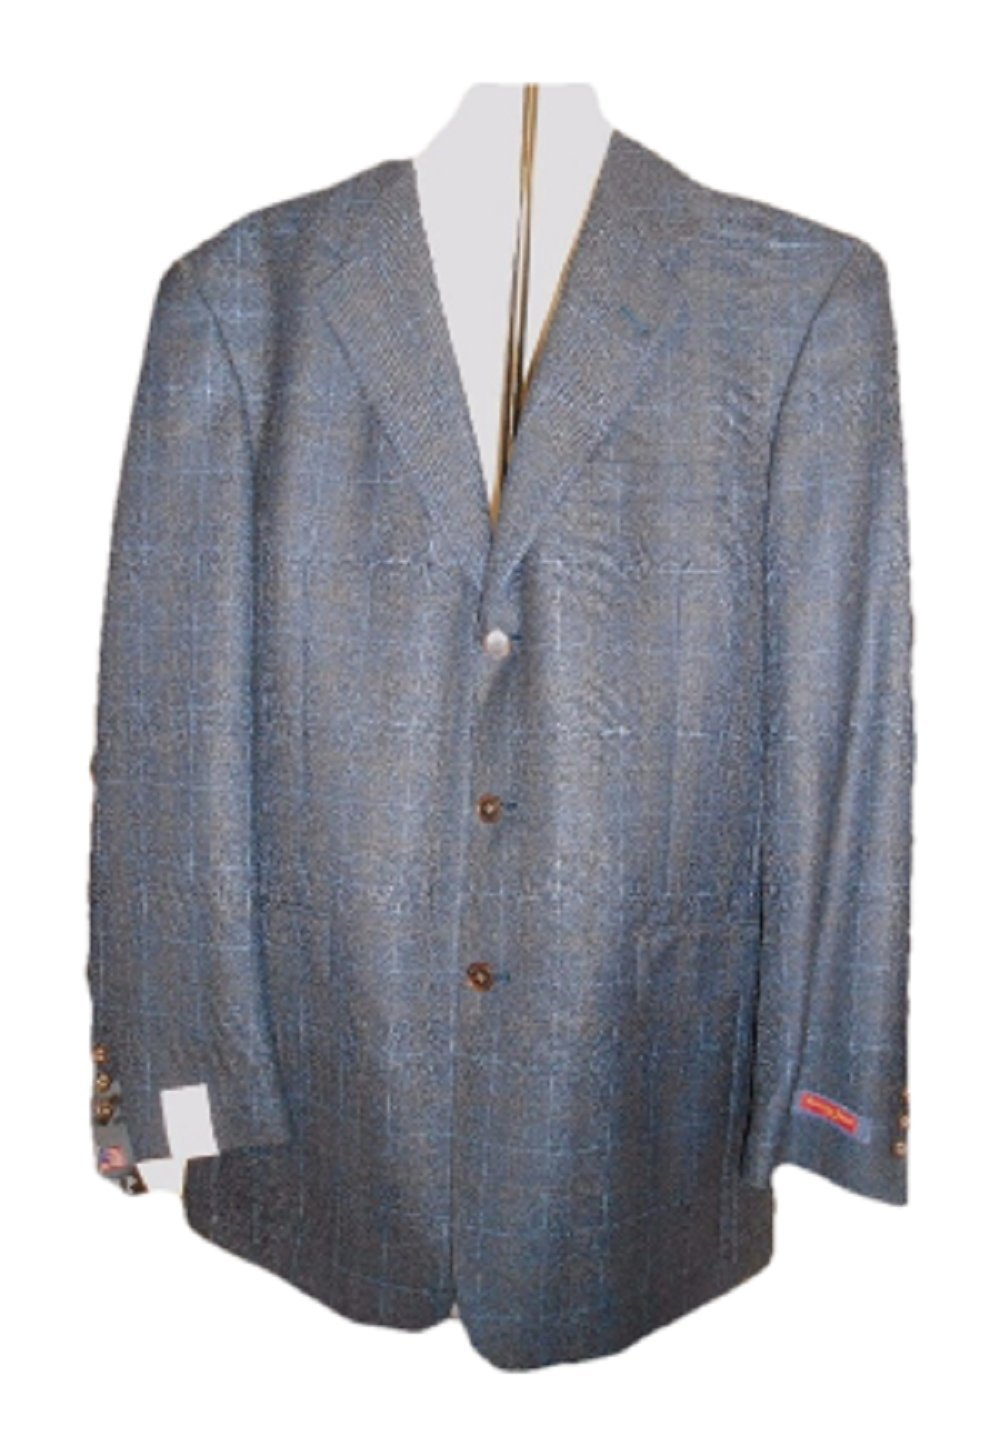 Austin Reed Men S Wool Plaid Blazer Jacket 42l Navy Plaid Buy Online In Botswana At Botswana Desertcart Com Productid 45095665